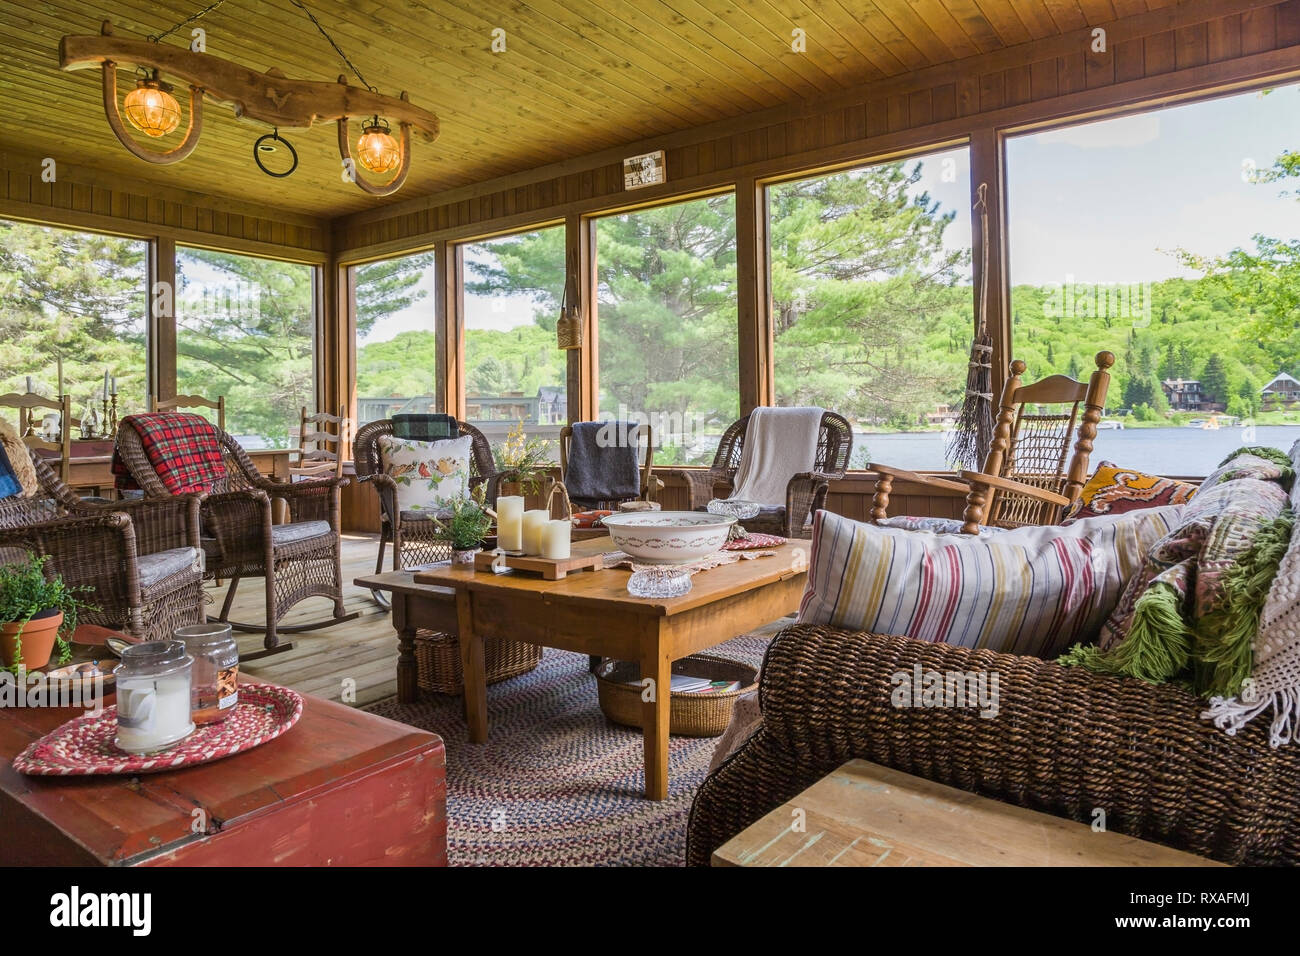 Table Sunroom High Resolution Stock Photography And Images Alamy